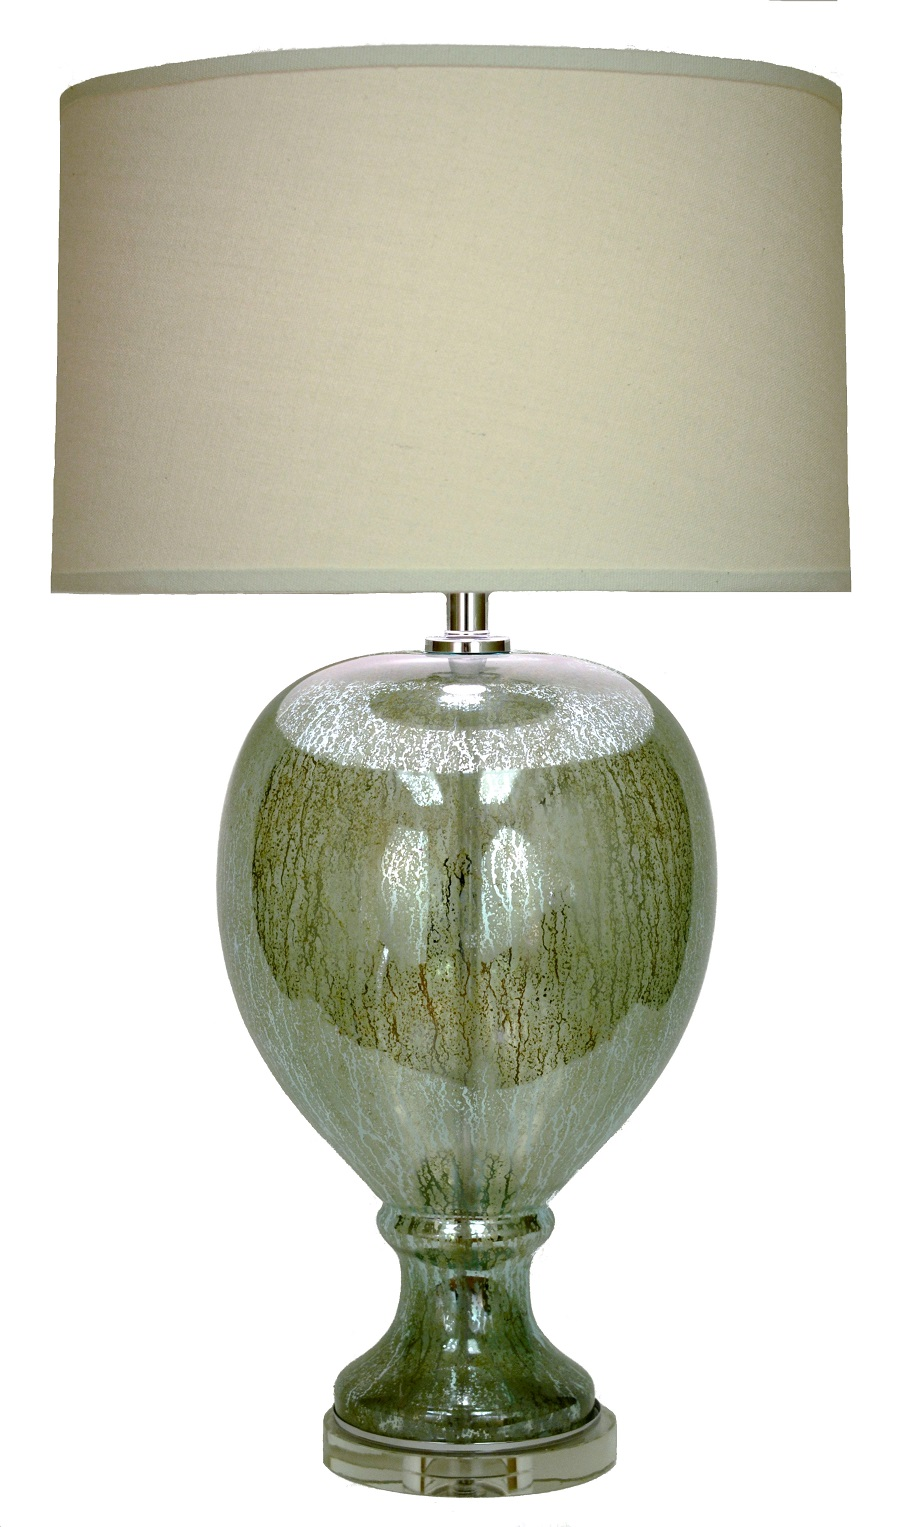 Glass Table Lamp-$475.00